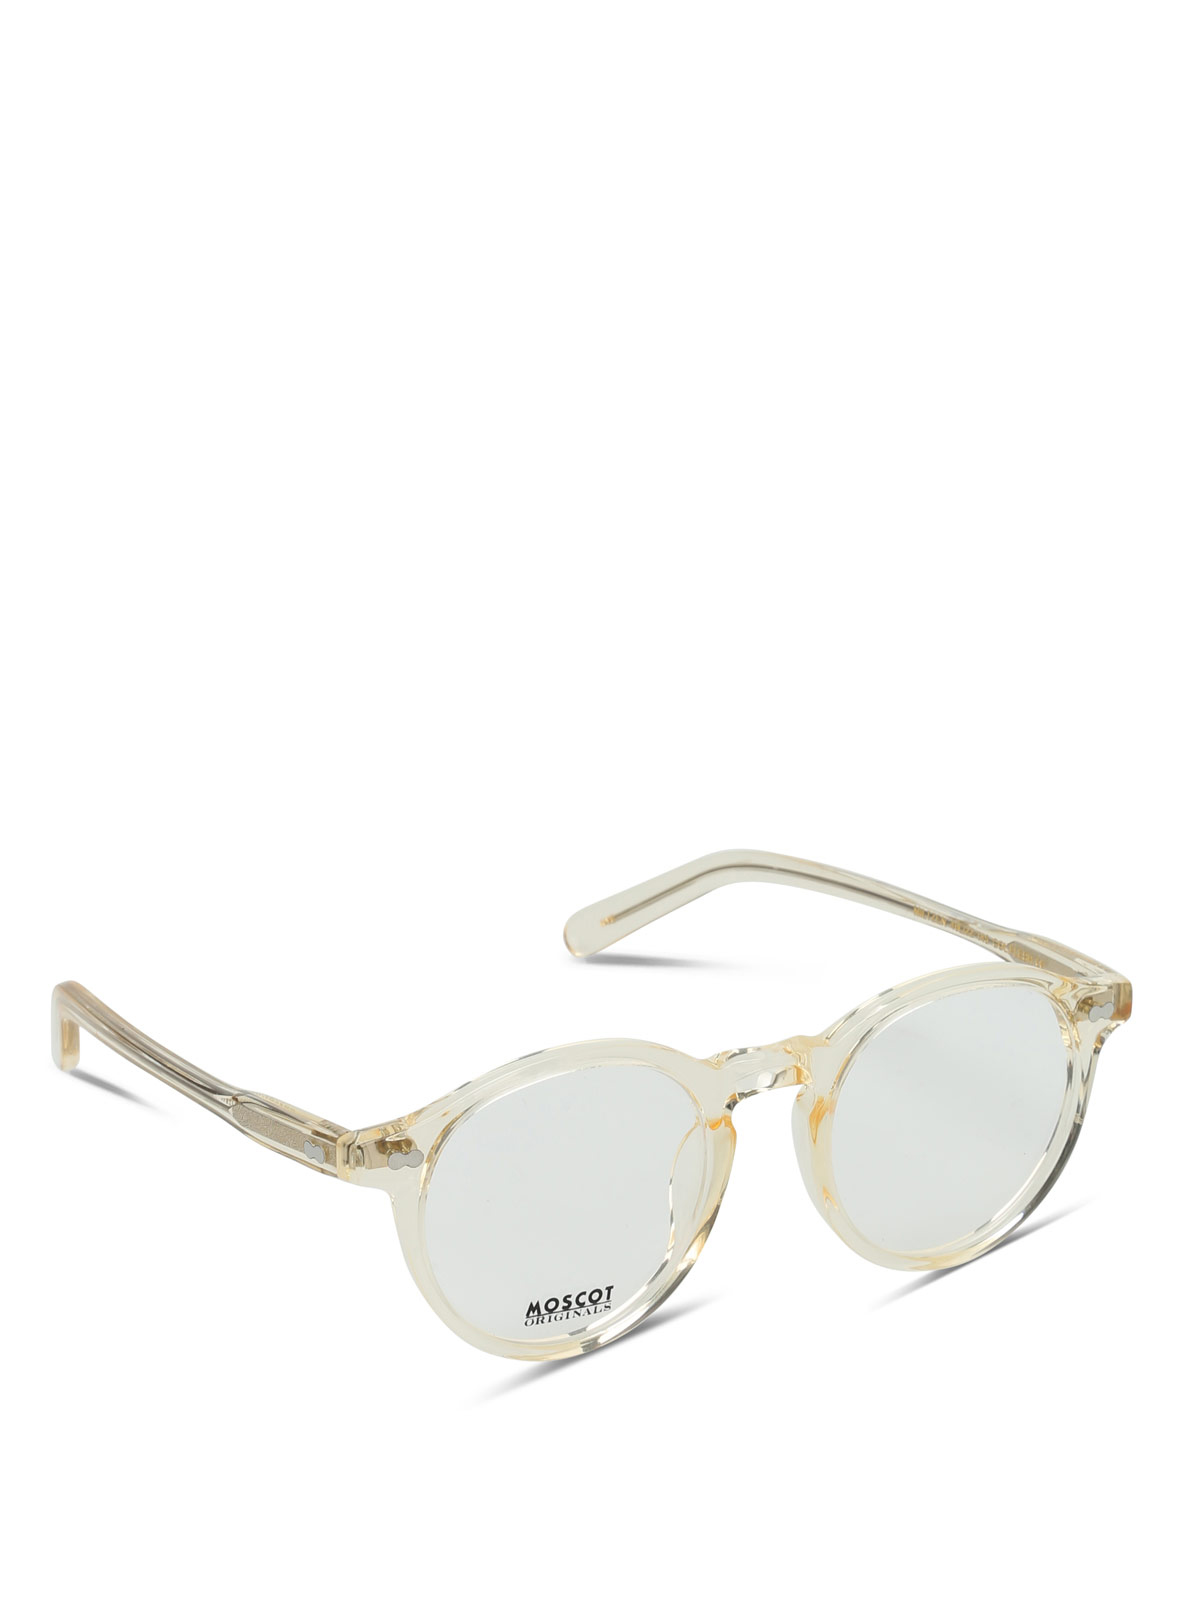 bf6f1b9e40c Moscot Glasses Online Shopping - Bitterroot Public Library